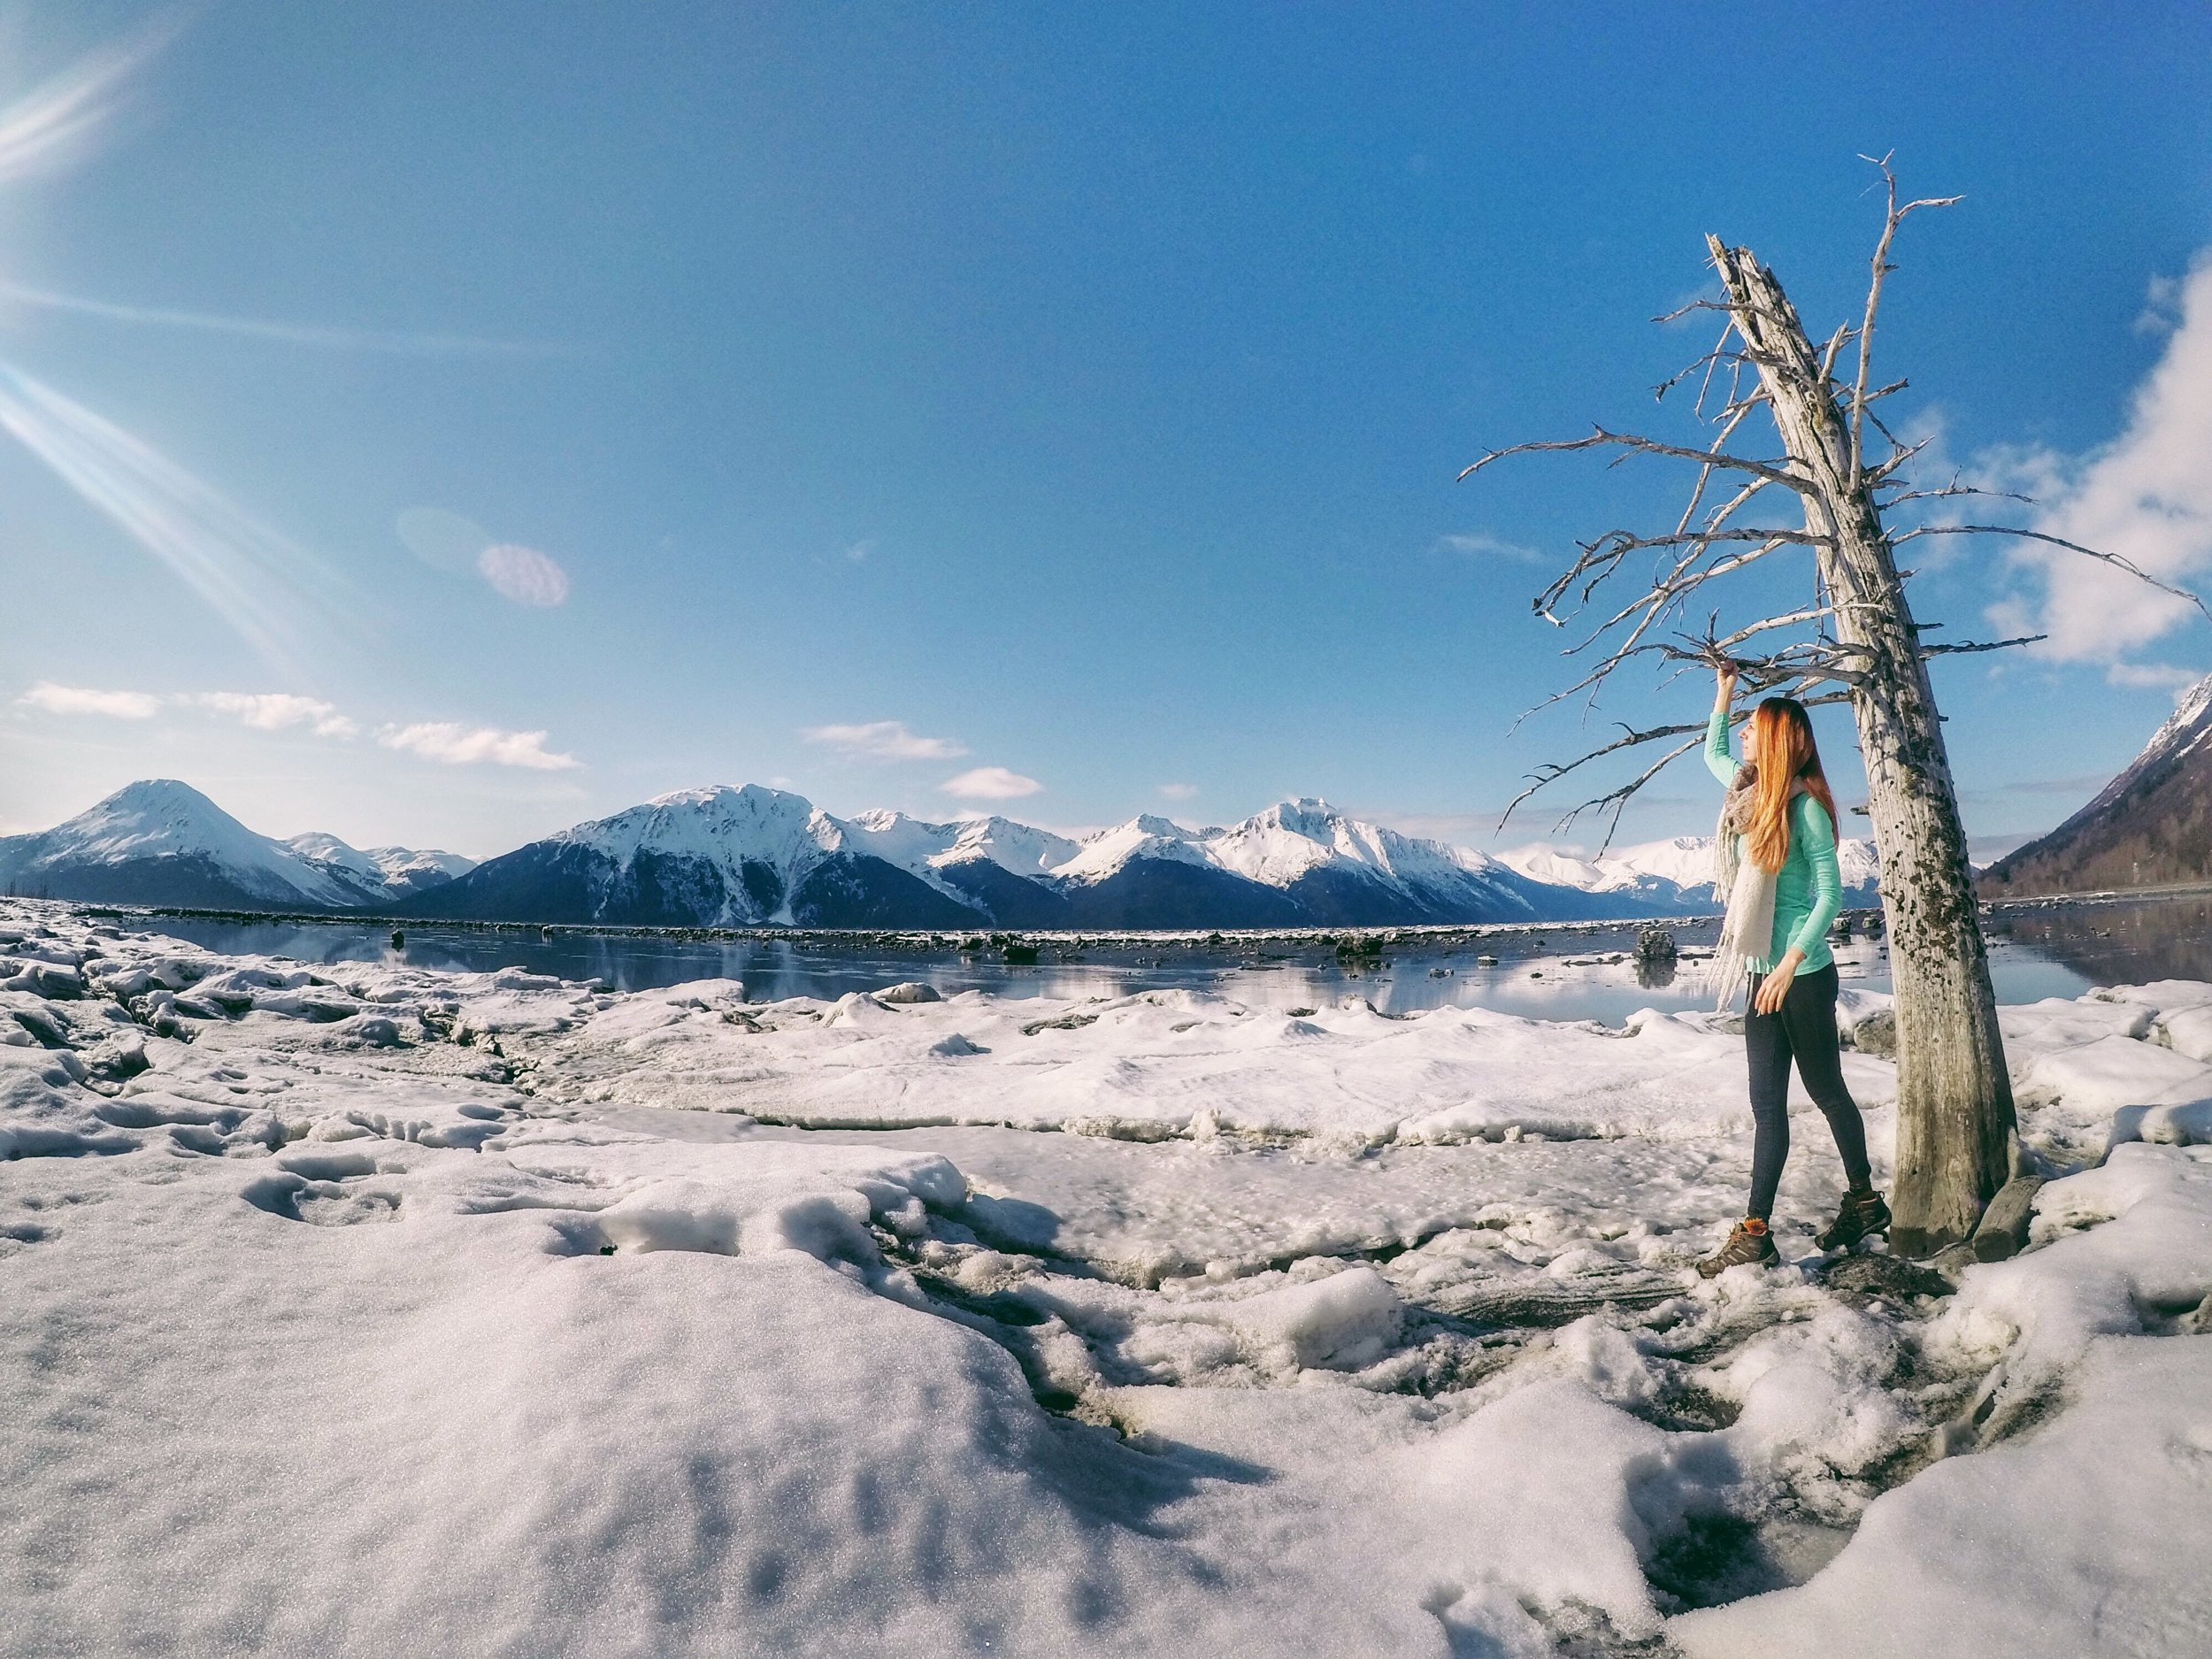 I arrived a day earlier than corey so of course I went exploring with my GoPro. with the sunshine, the weather was quite pleasant, I even took my winter coat off!